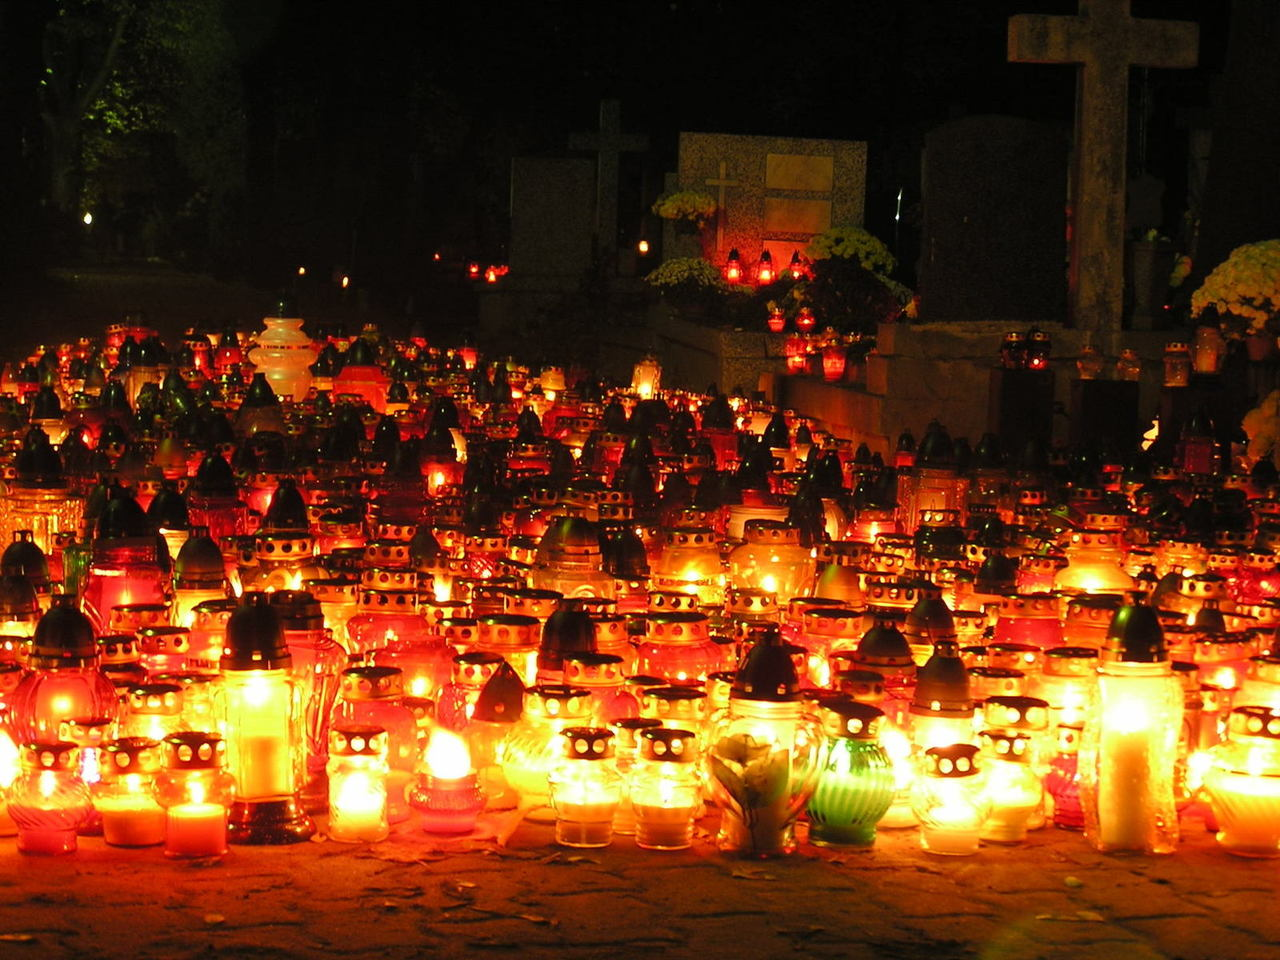 candles-on-a-cementary-1443411-1280x960.jpg